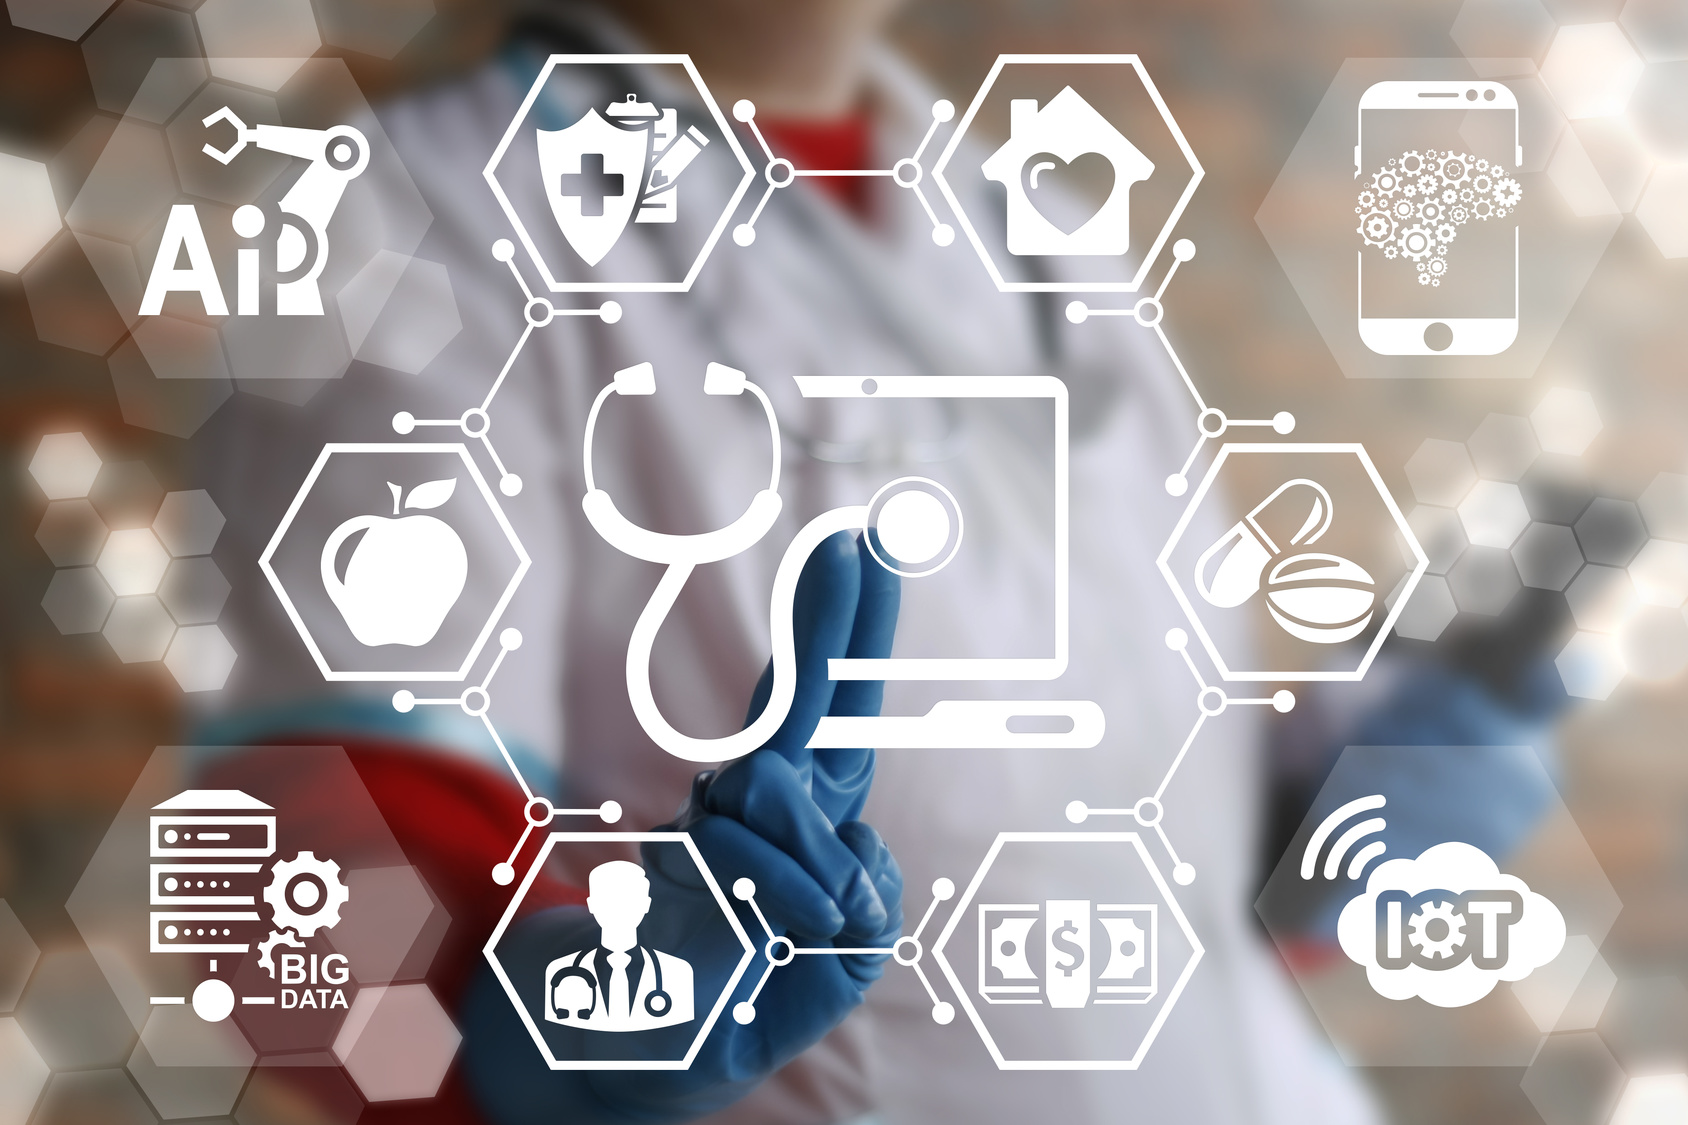 Innovative Technologies Diagnosis and Treatment in Medicine. Health Care Innovation Information Technology Integrate. Doctor touched laptop stethoscope icon on virtual screen. Data, IOT, AI, Computing